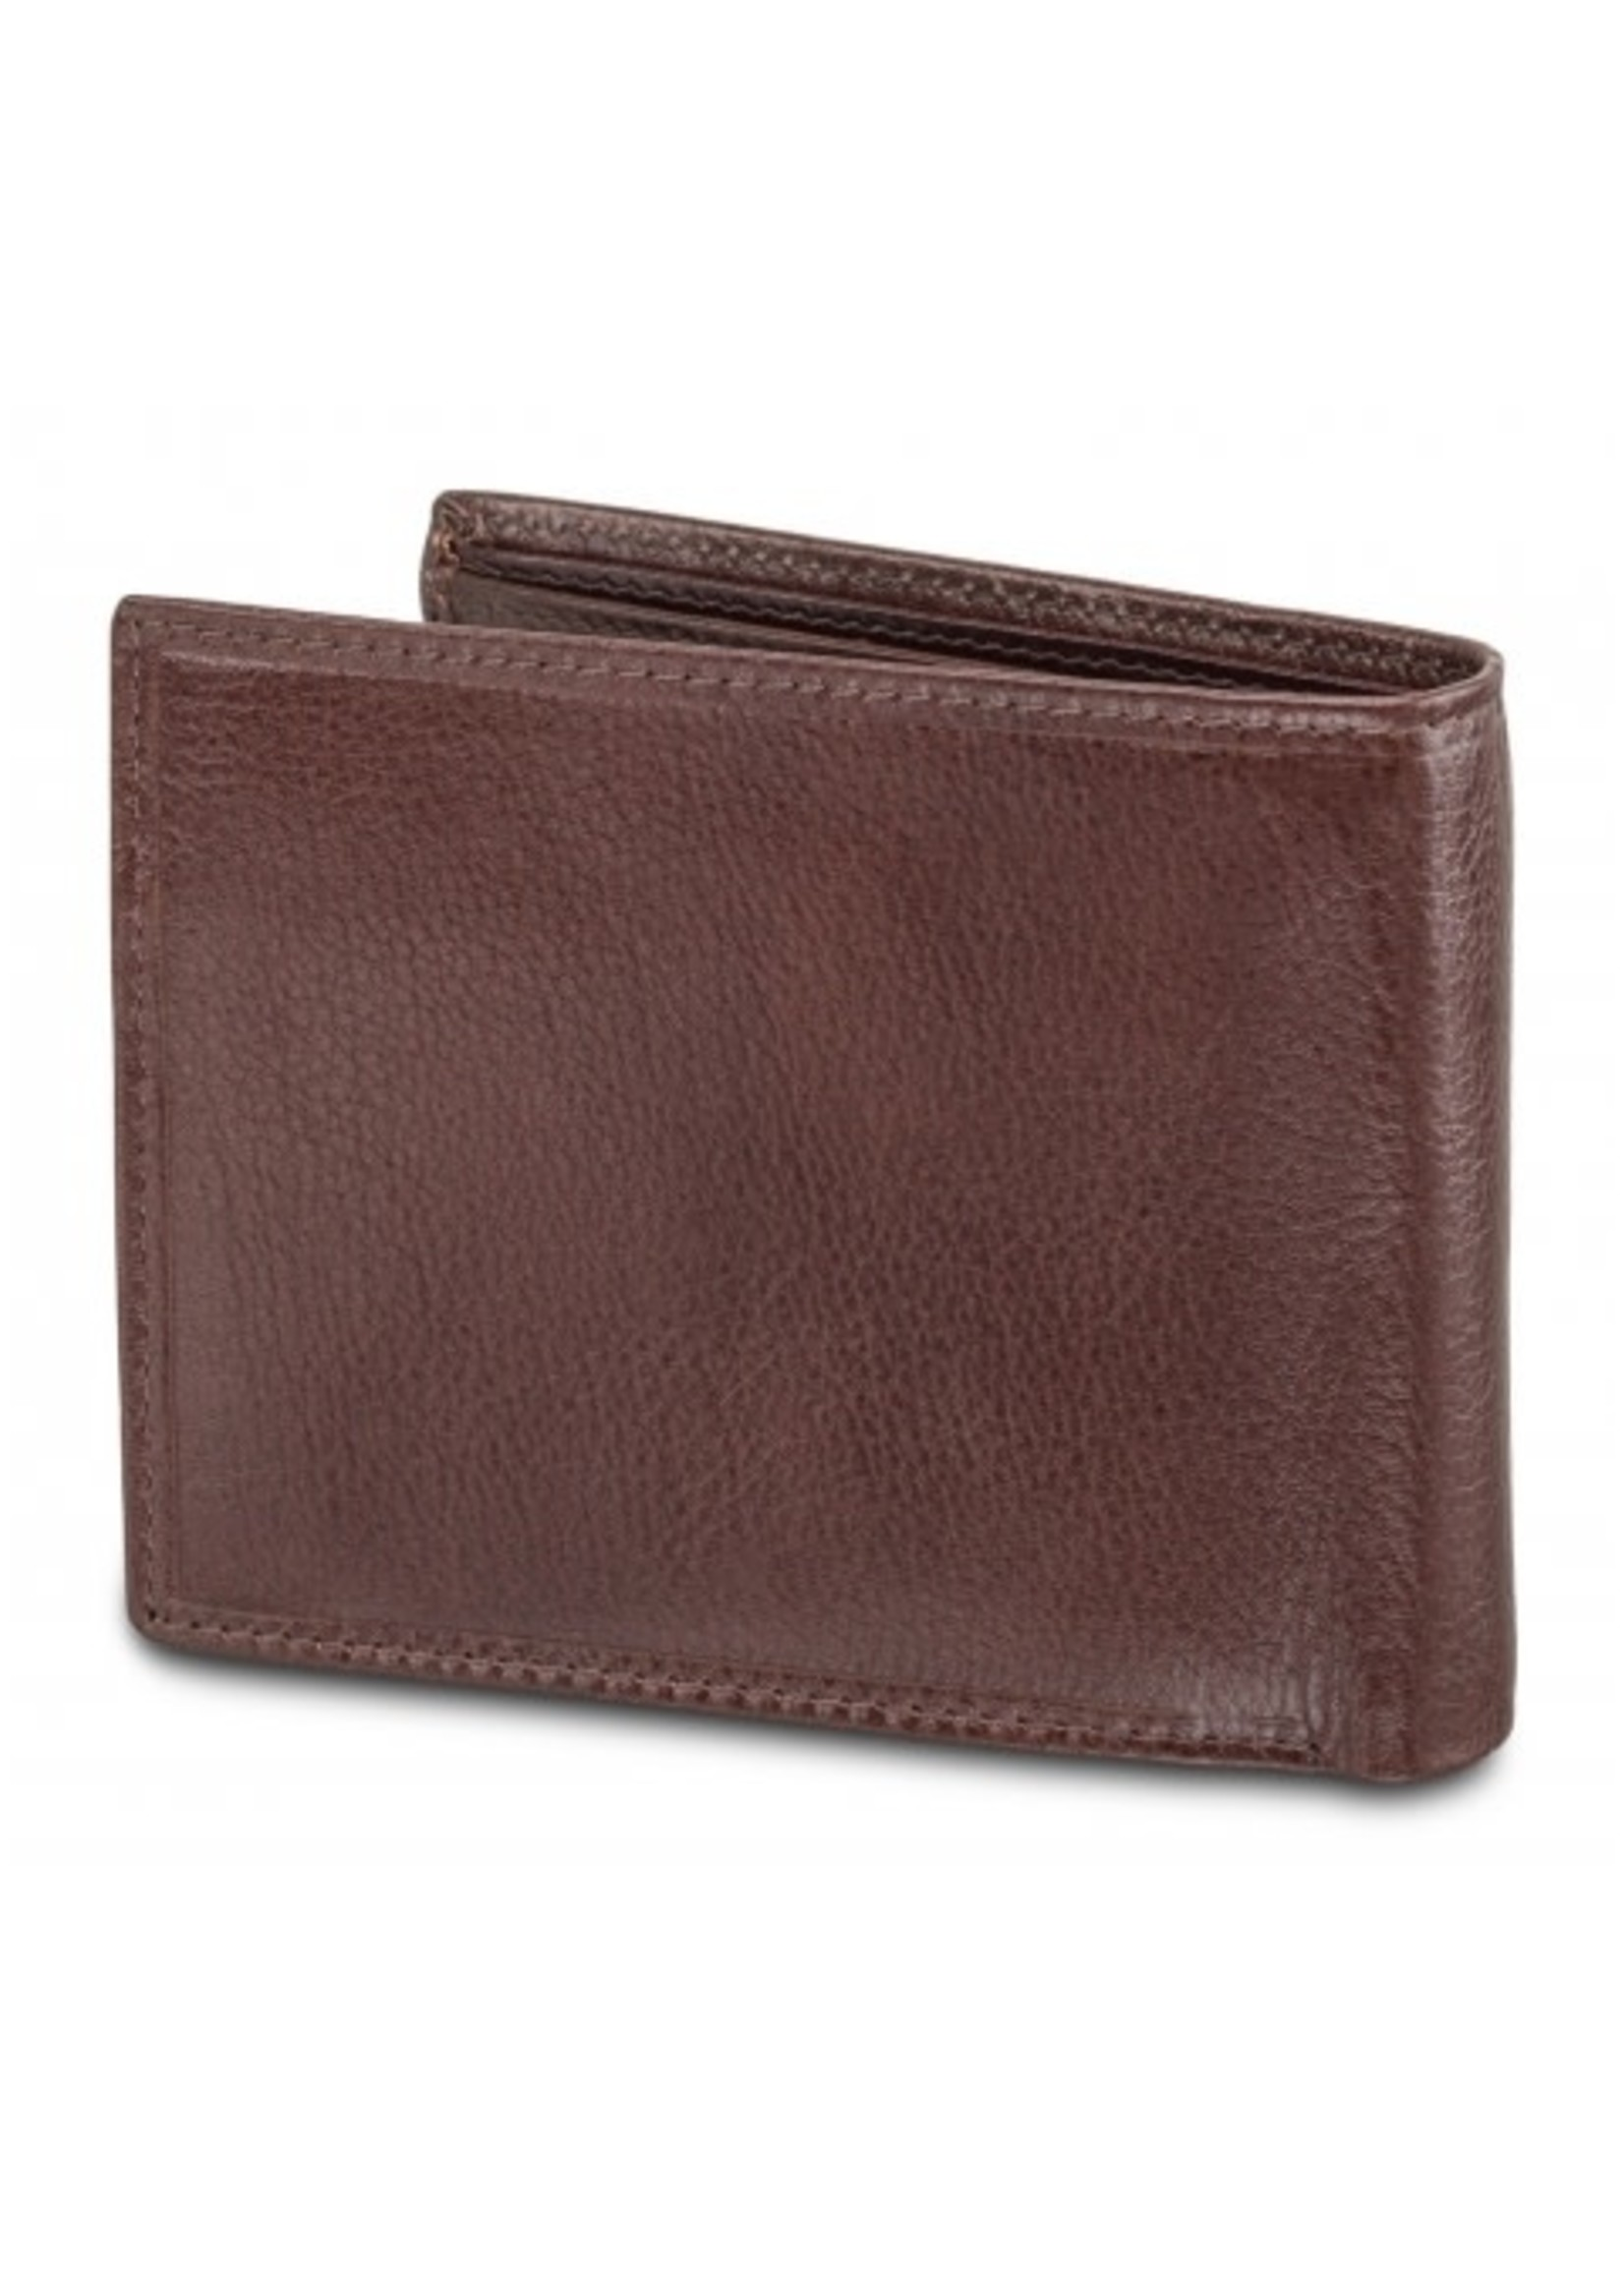 Mancini Men`s RFID Secure Wallet with Removable Passcase and Coin Pocket - Brown